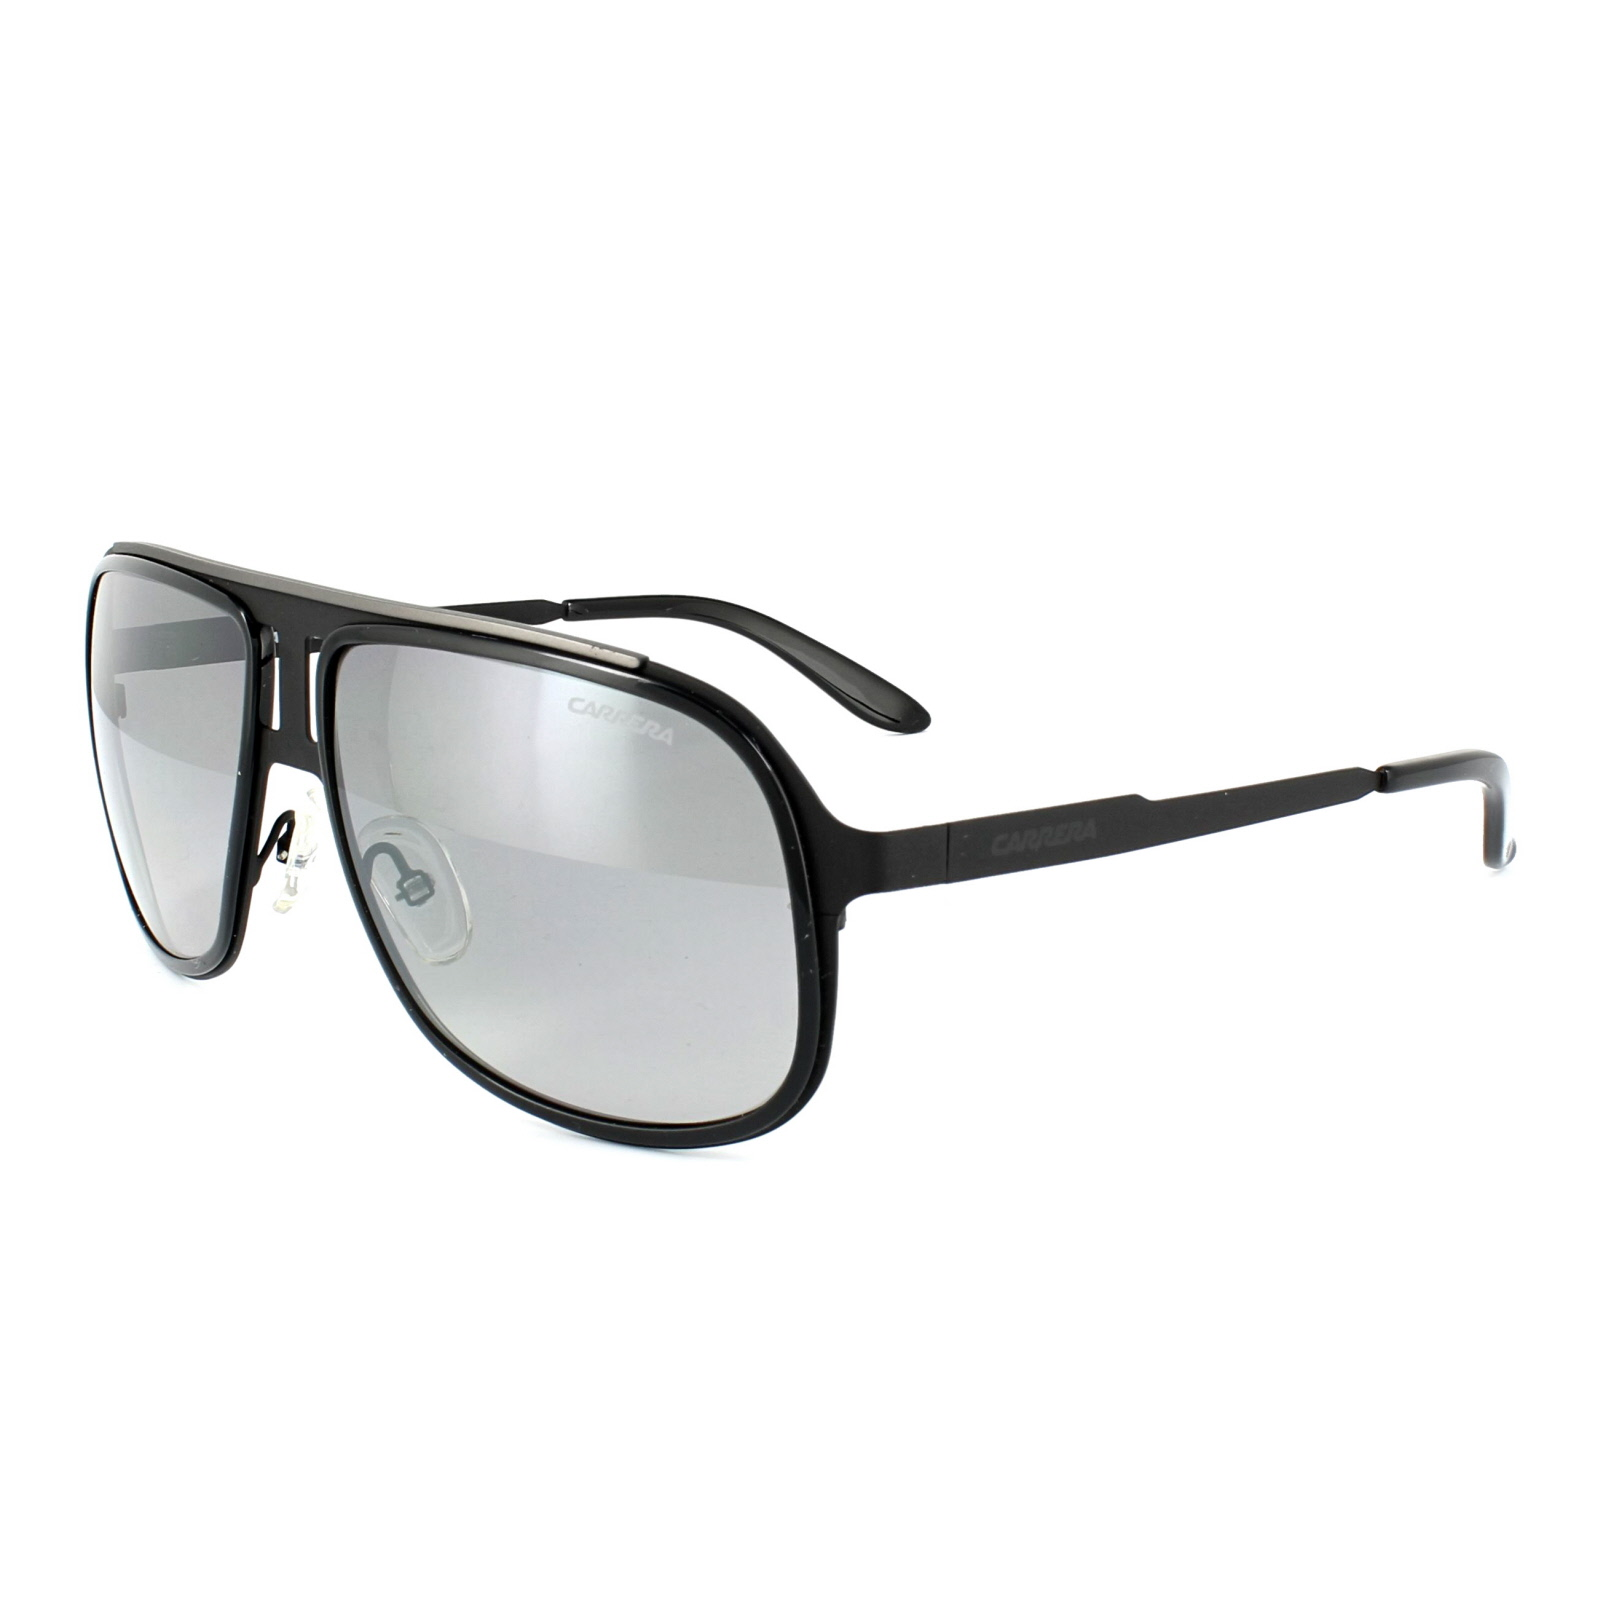 27c5519a916e8c Sentinel Carrera Sunglasses Carrera 101 HKQ IC Shiny Black   Dark Ruthenium  Grey Silver M